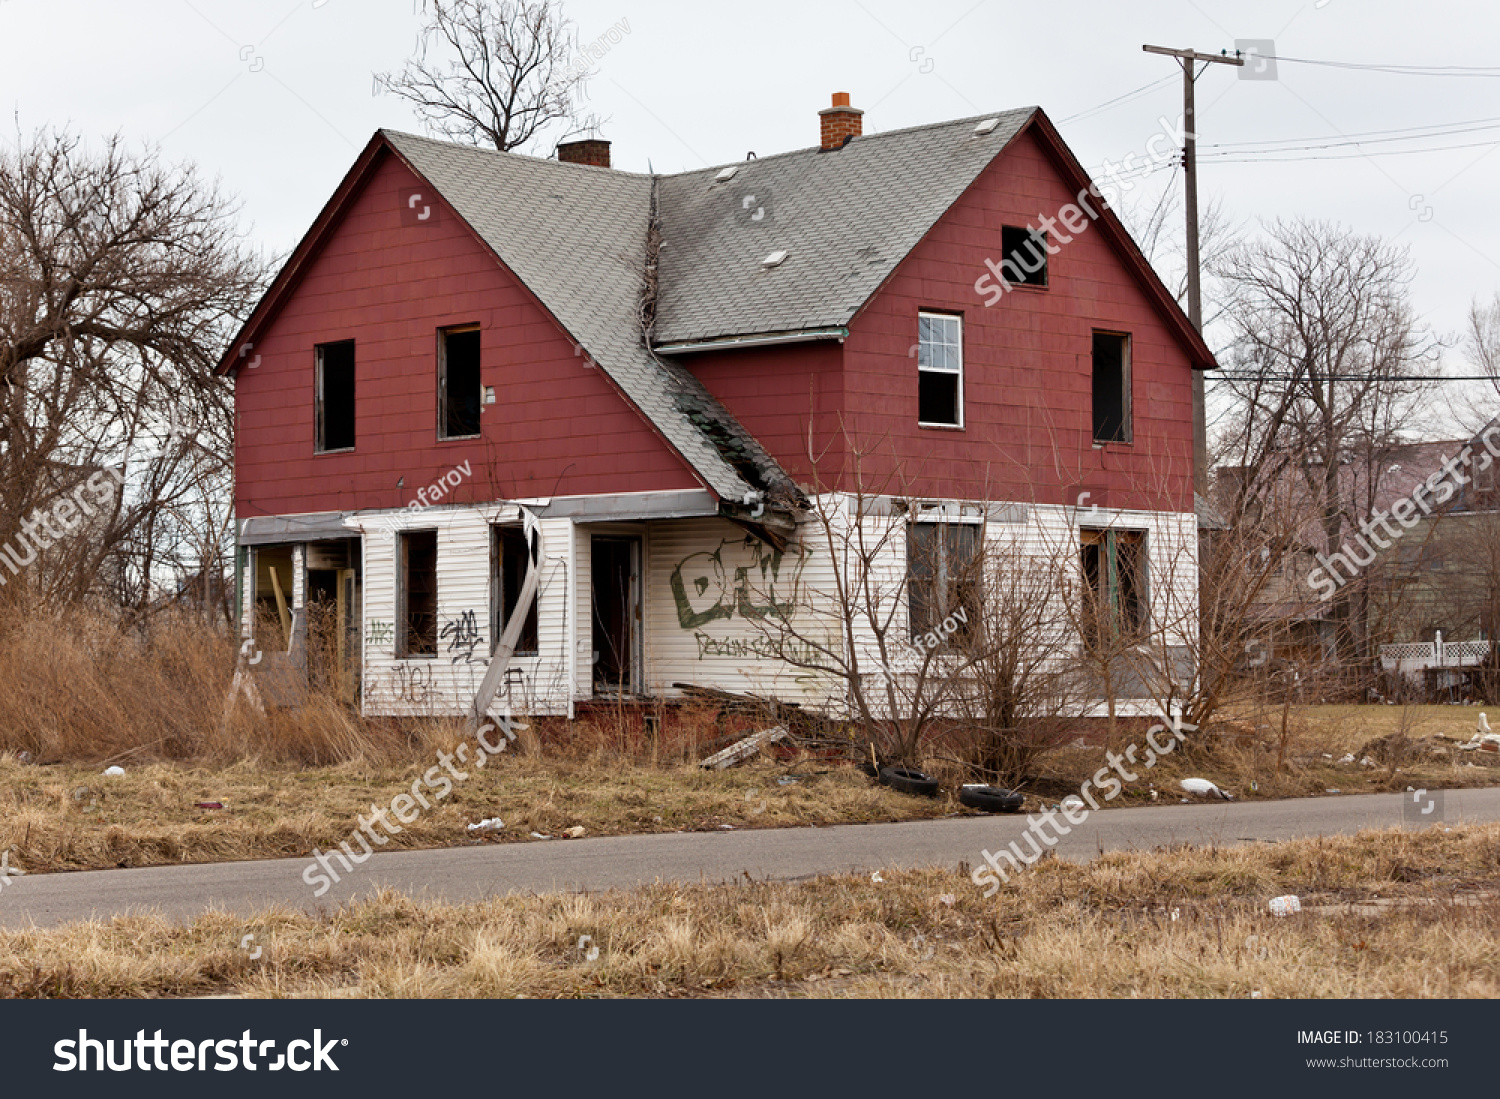 Abandoned houses in detroit michigan this is a deserted for Building a house in michigan